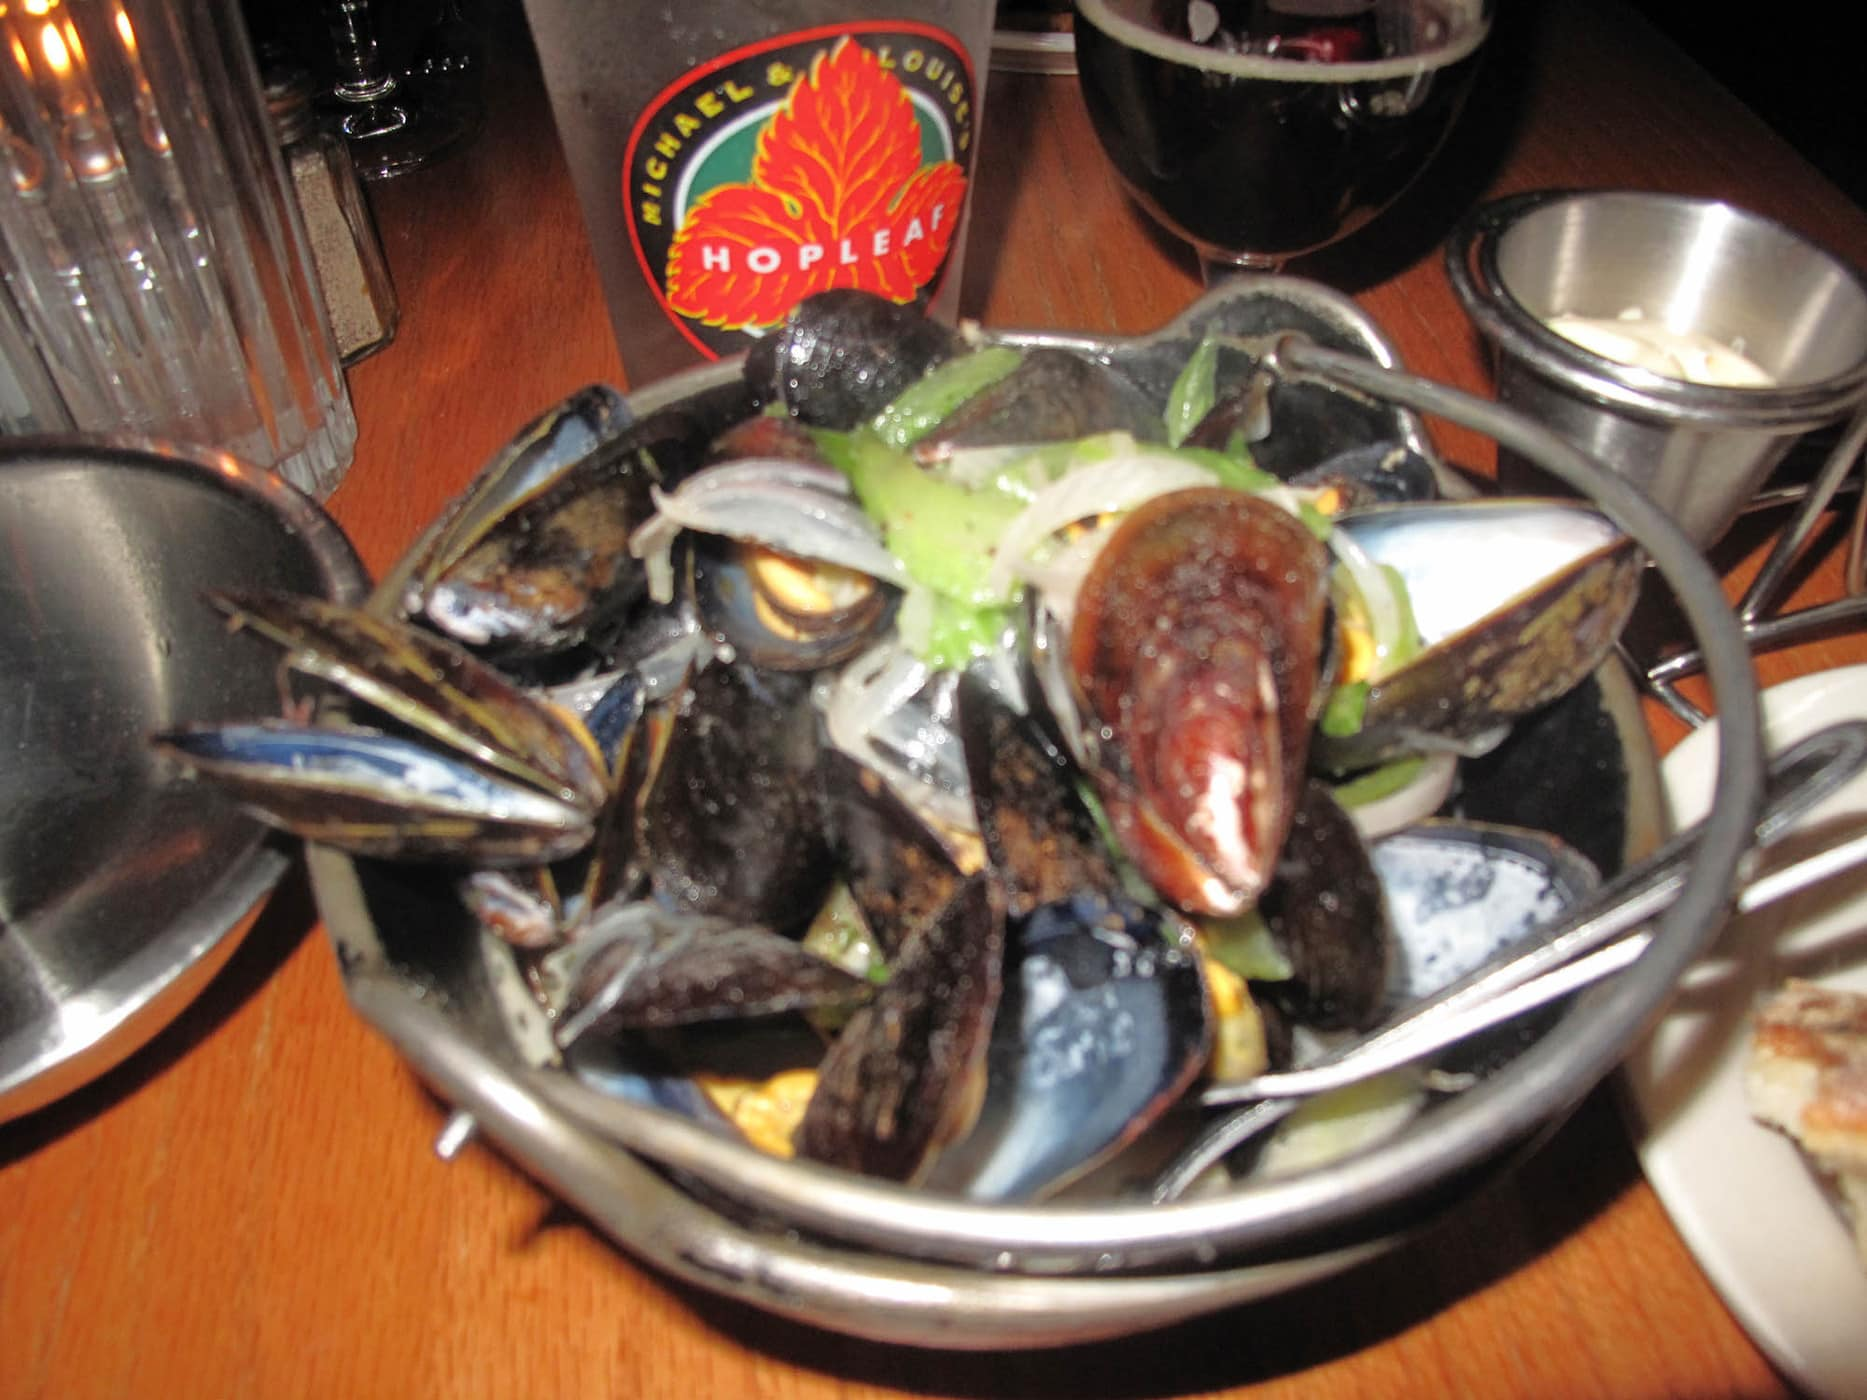 Mussels from Hopleaf.